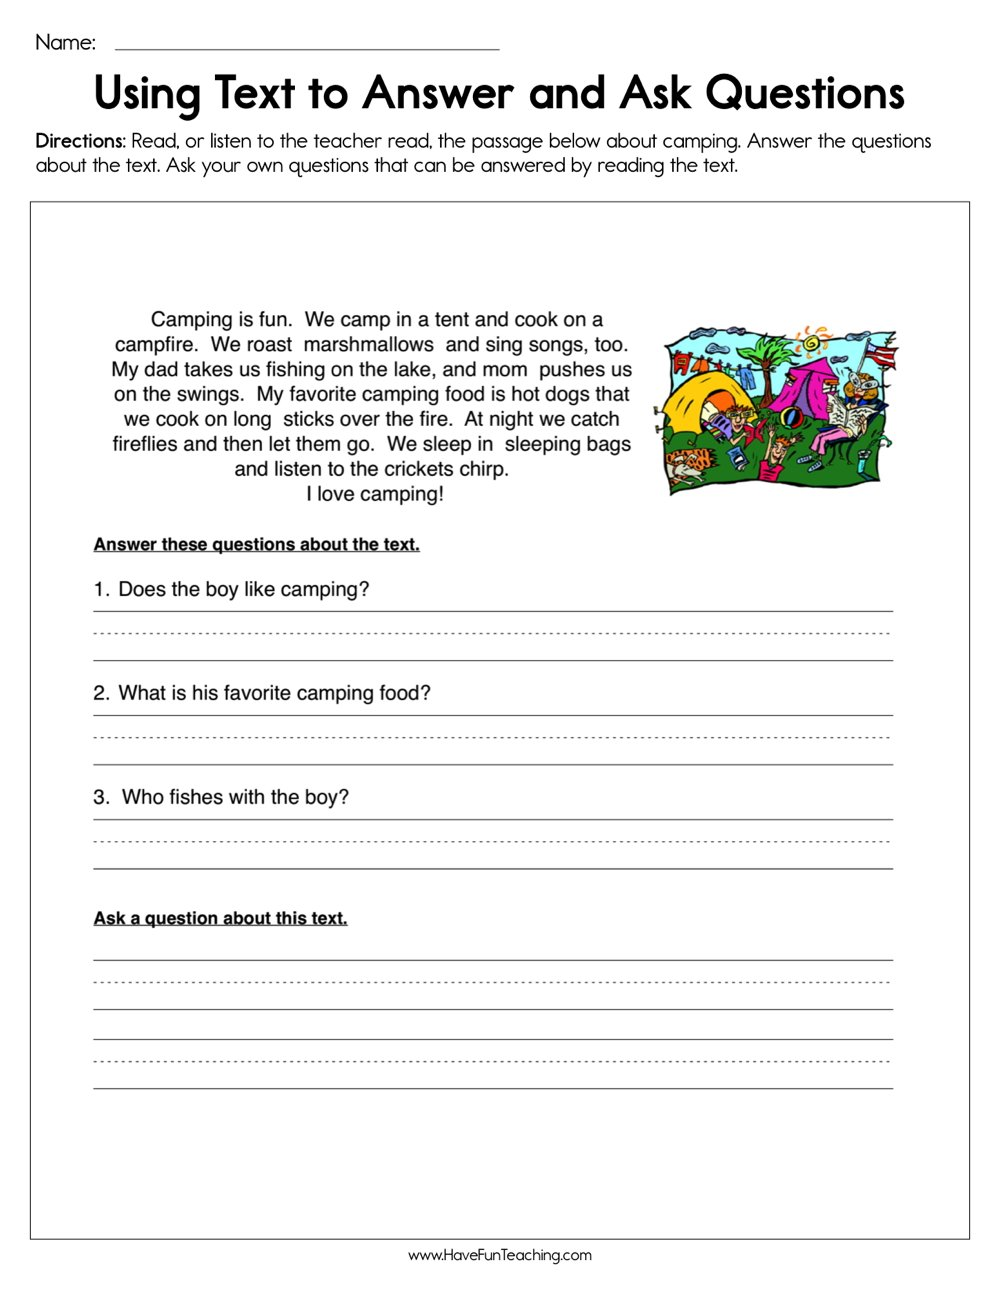 - Using Text To Answer And Ask Questions Worksheet – Have Fun Teaching